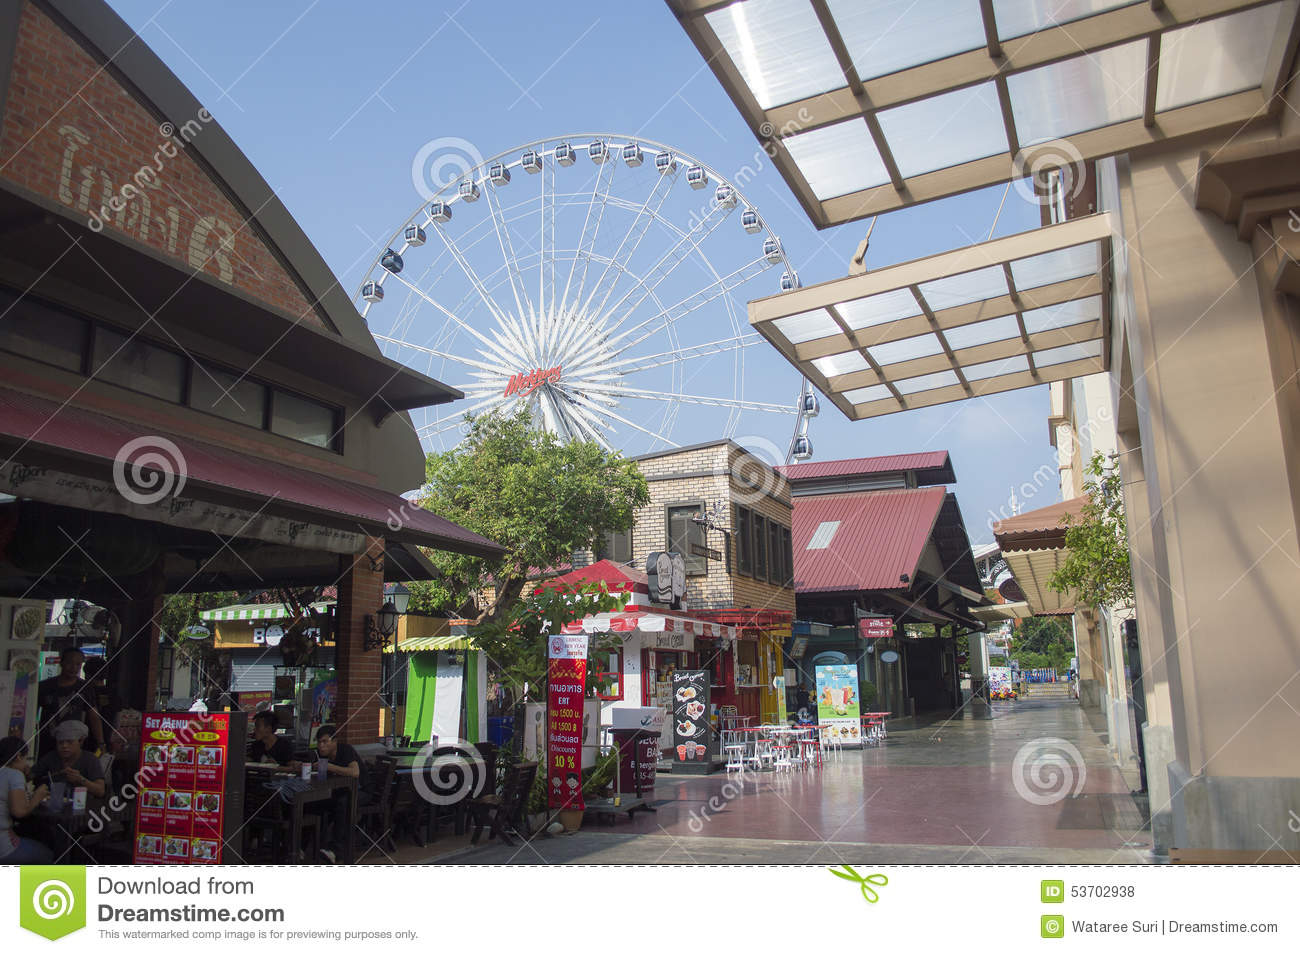 oligopolistic market structure of asian sky shop South asia 22 64 100 92  growth rate 2000- 2010- 2010 2020 europe  527 717 31 31 e- asia/pac 195  market structures – oligopoly   sky team  central complex of shopping, dining and  recreation.